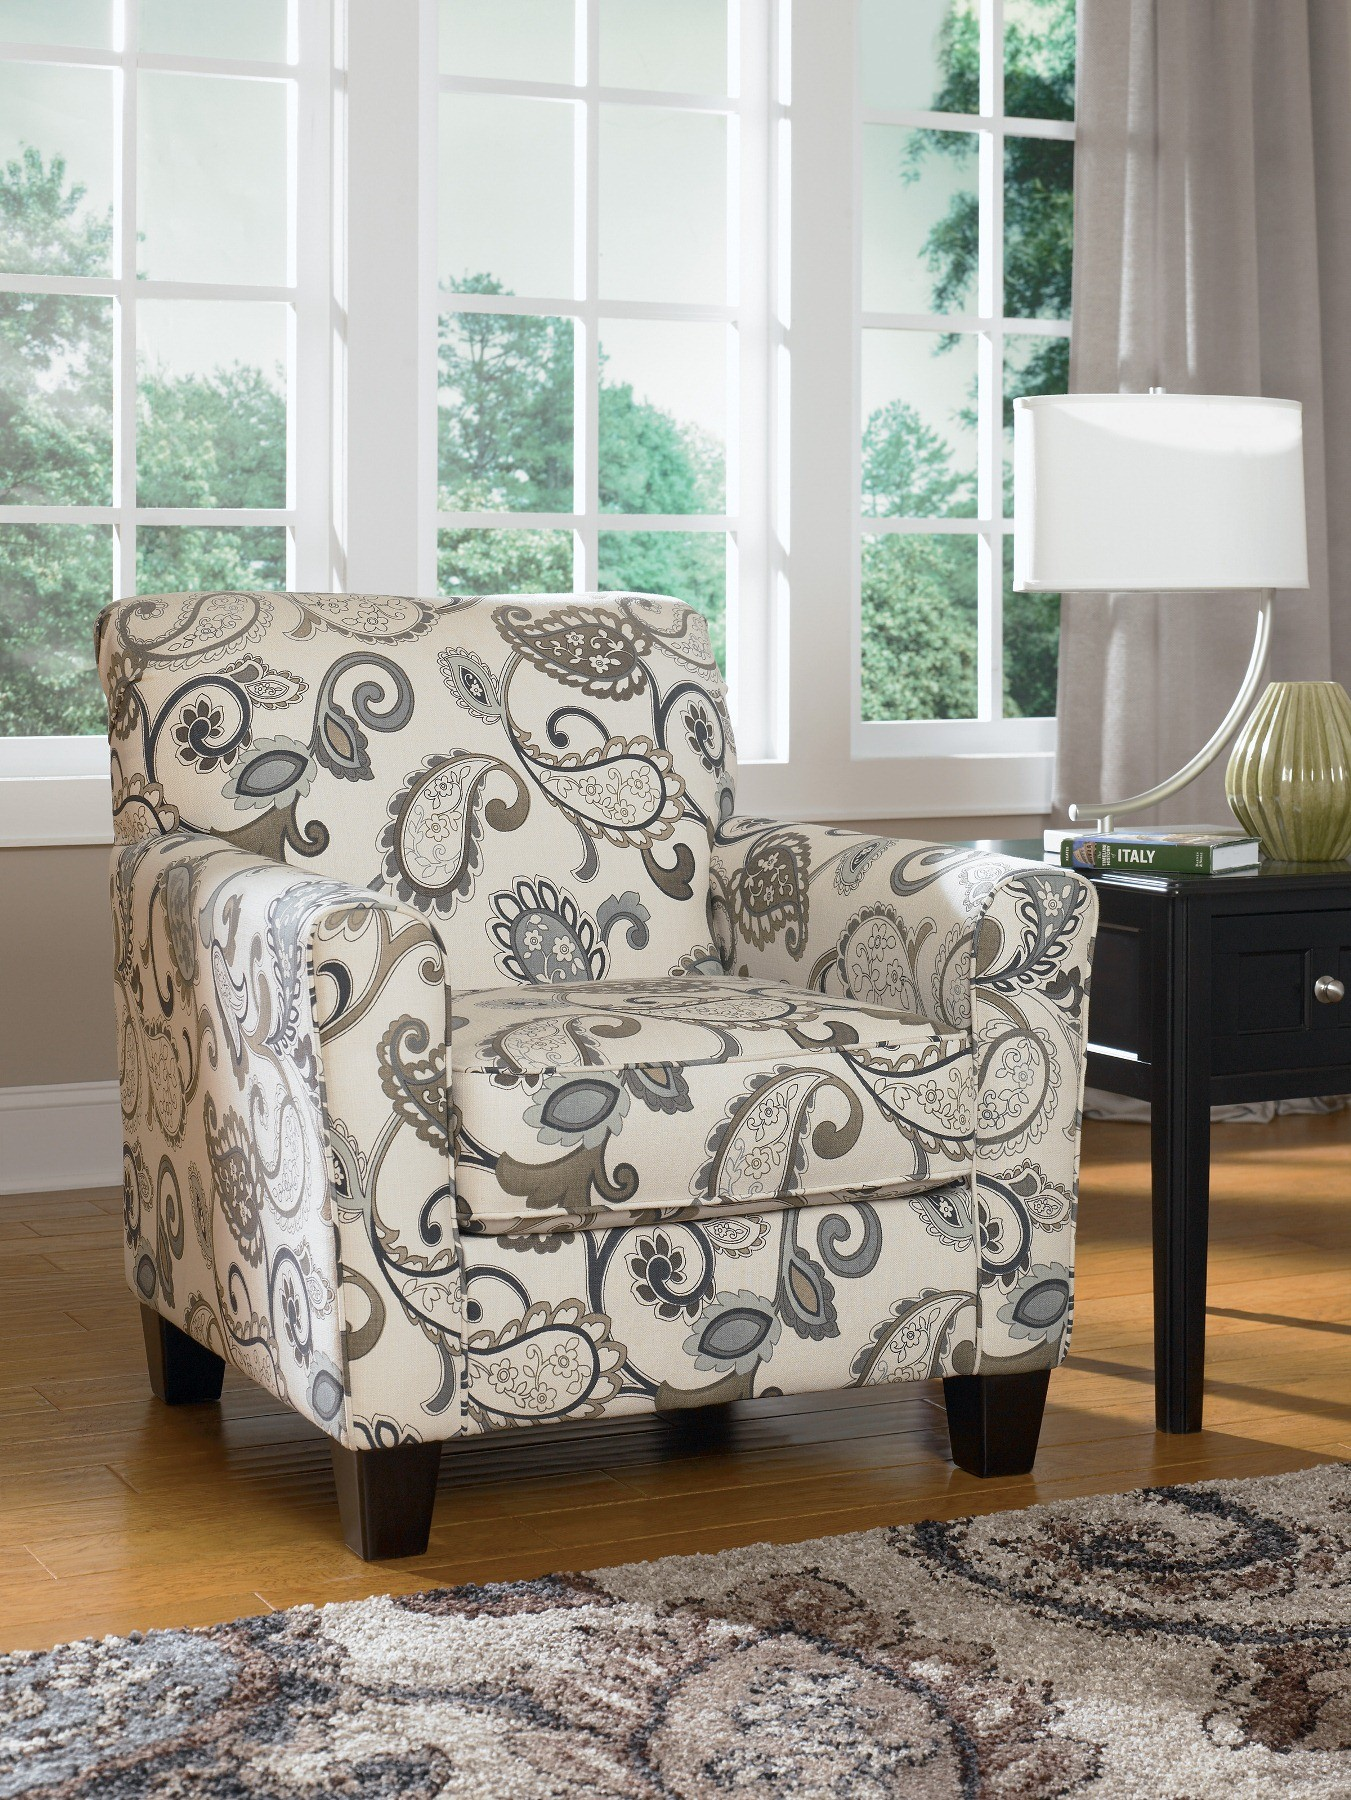 Yvette Steel Accent Chair From Ashley 7790021 Coleman